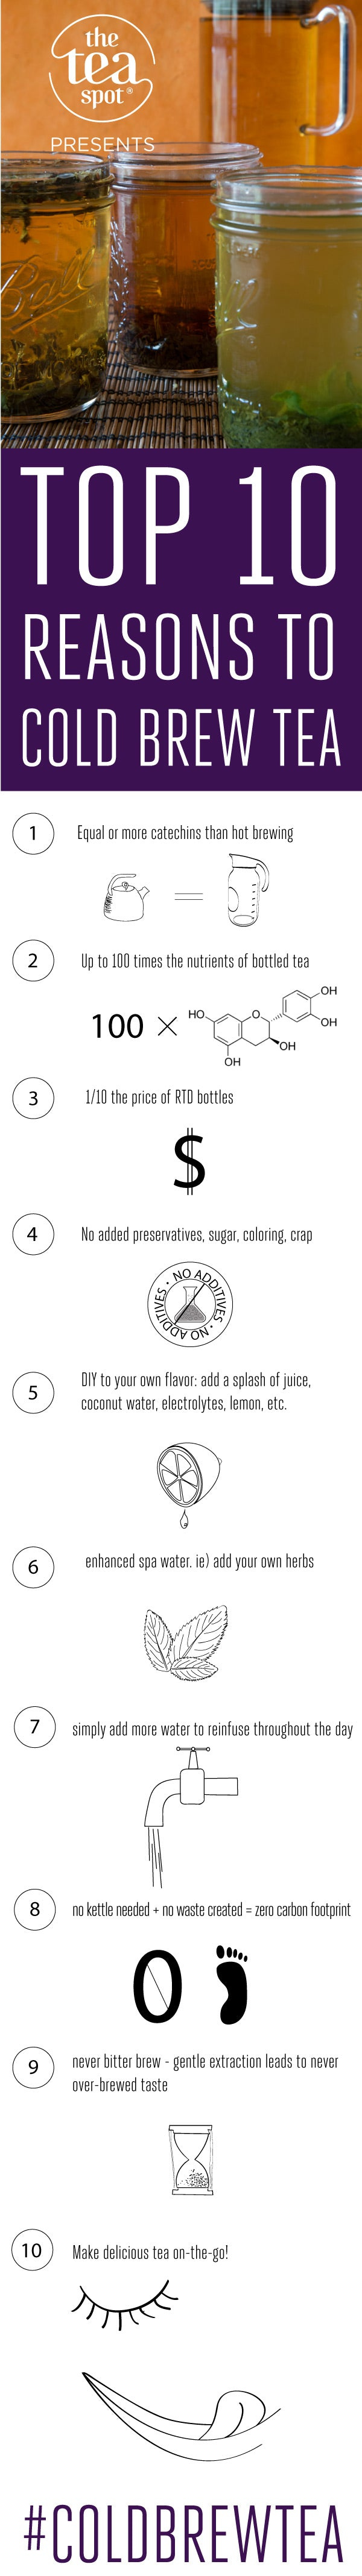 Top 10 Reasons to Cold Brew Tea